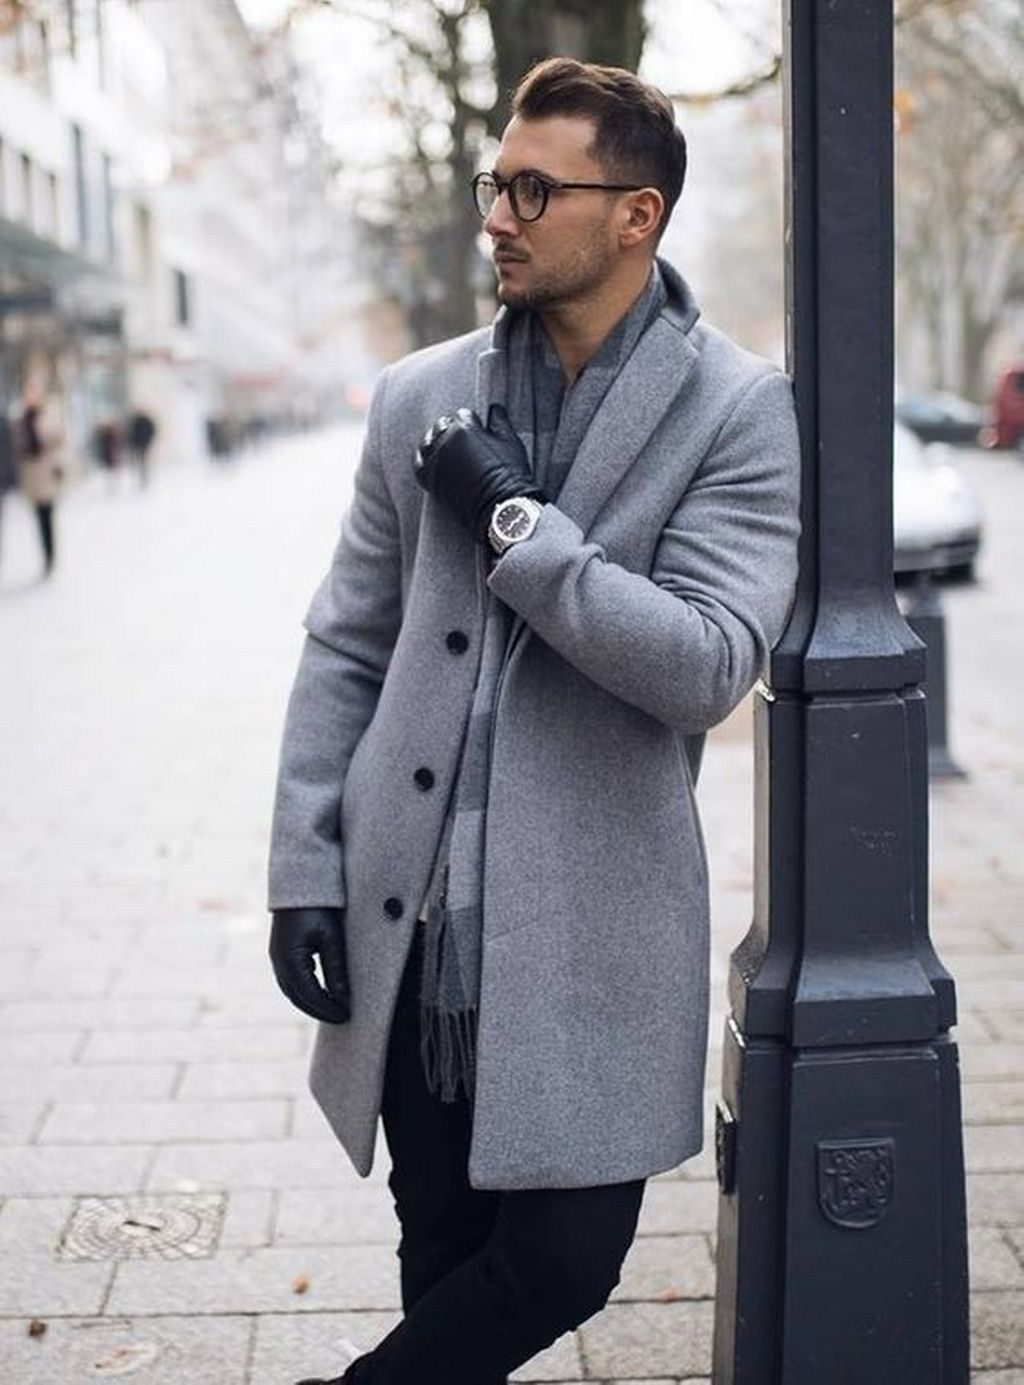 45 Modern Business Winter Outfit Ideas For Men In The Office